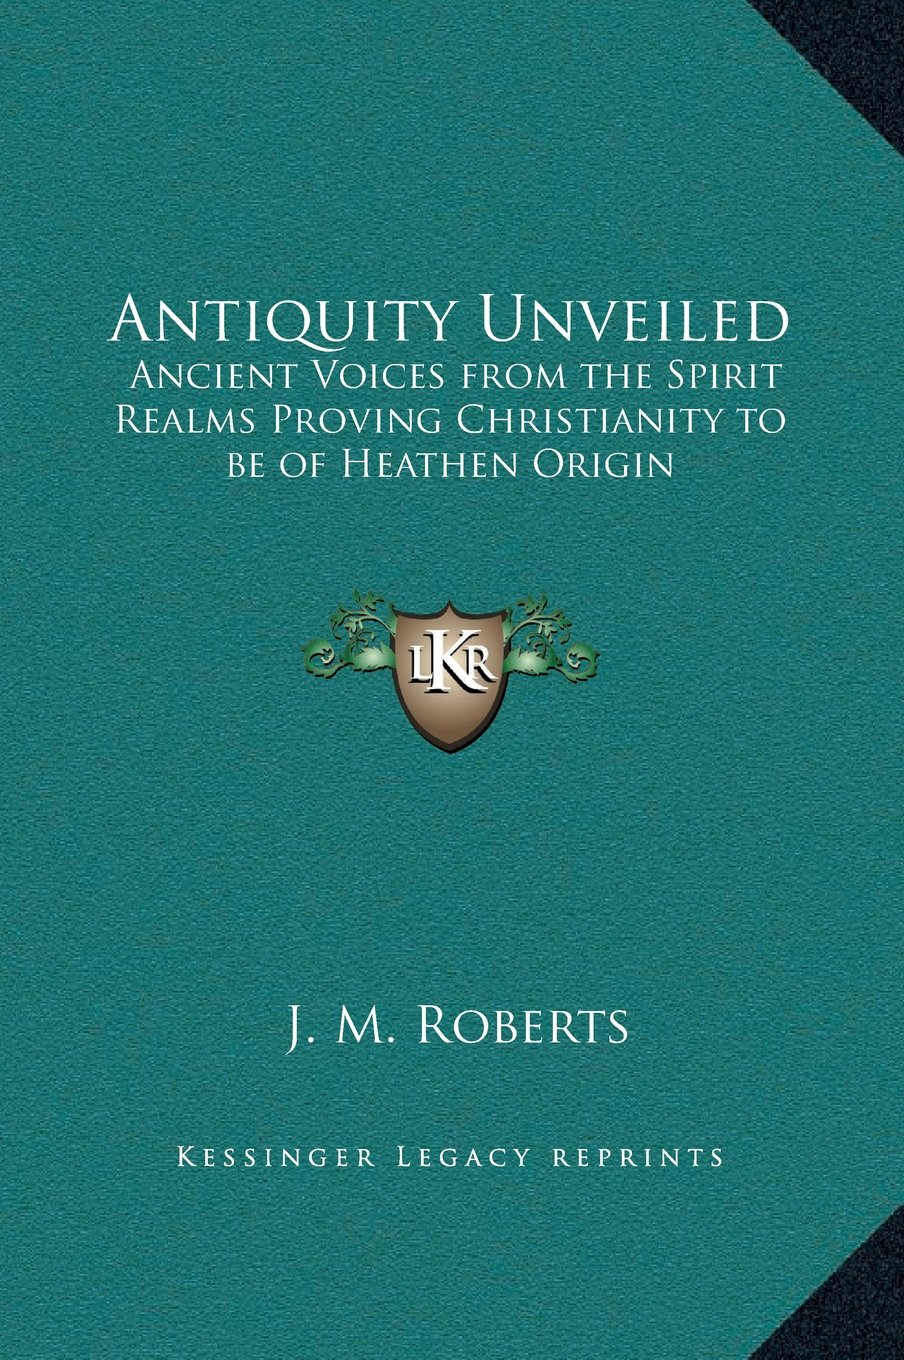 Antiquity Unveiled: Ancient Voices from the Spirit Realms Proving Christianity to be of Heathen Origin pdf